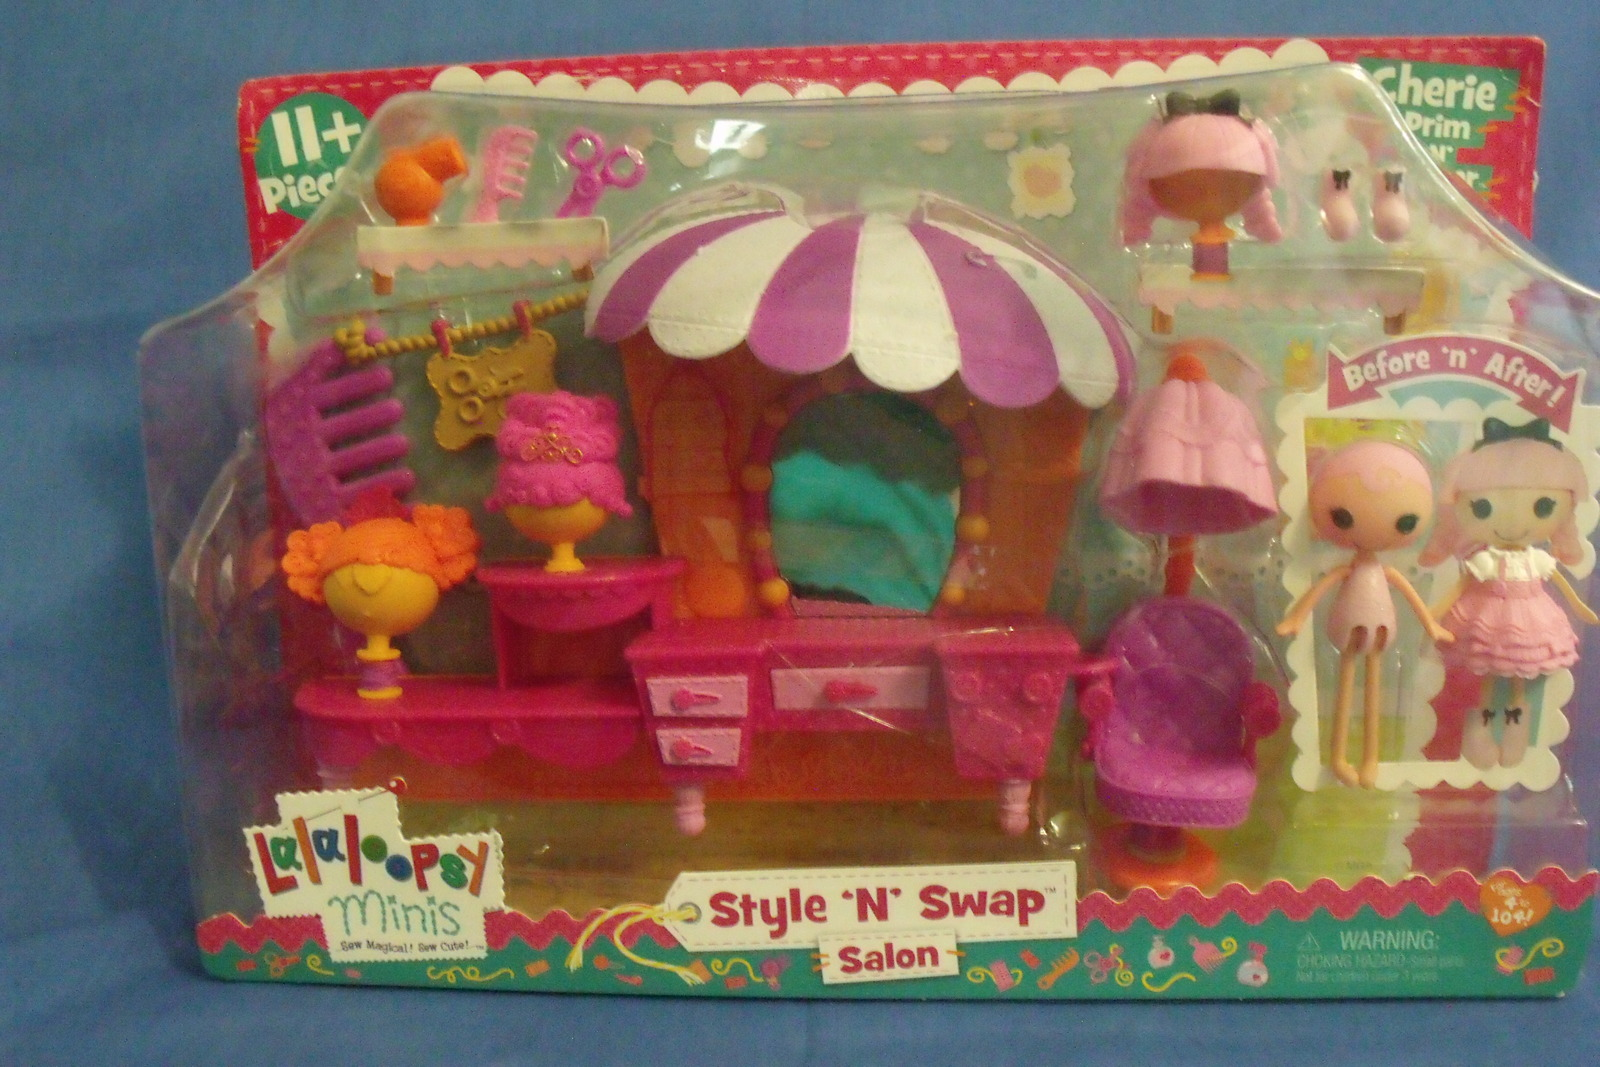 Toys Dolls New Lalaloopsy Style N Swap Salon Cherie Prim N Proper Play Set 11 pc